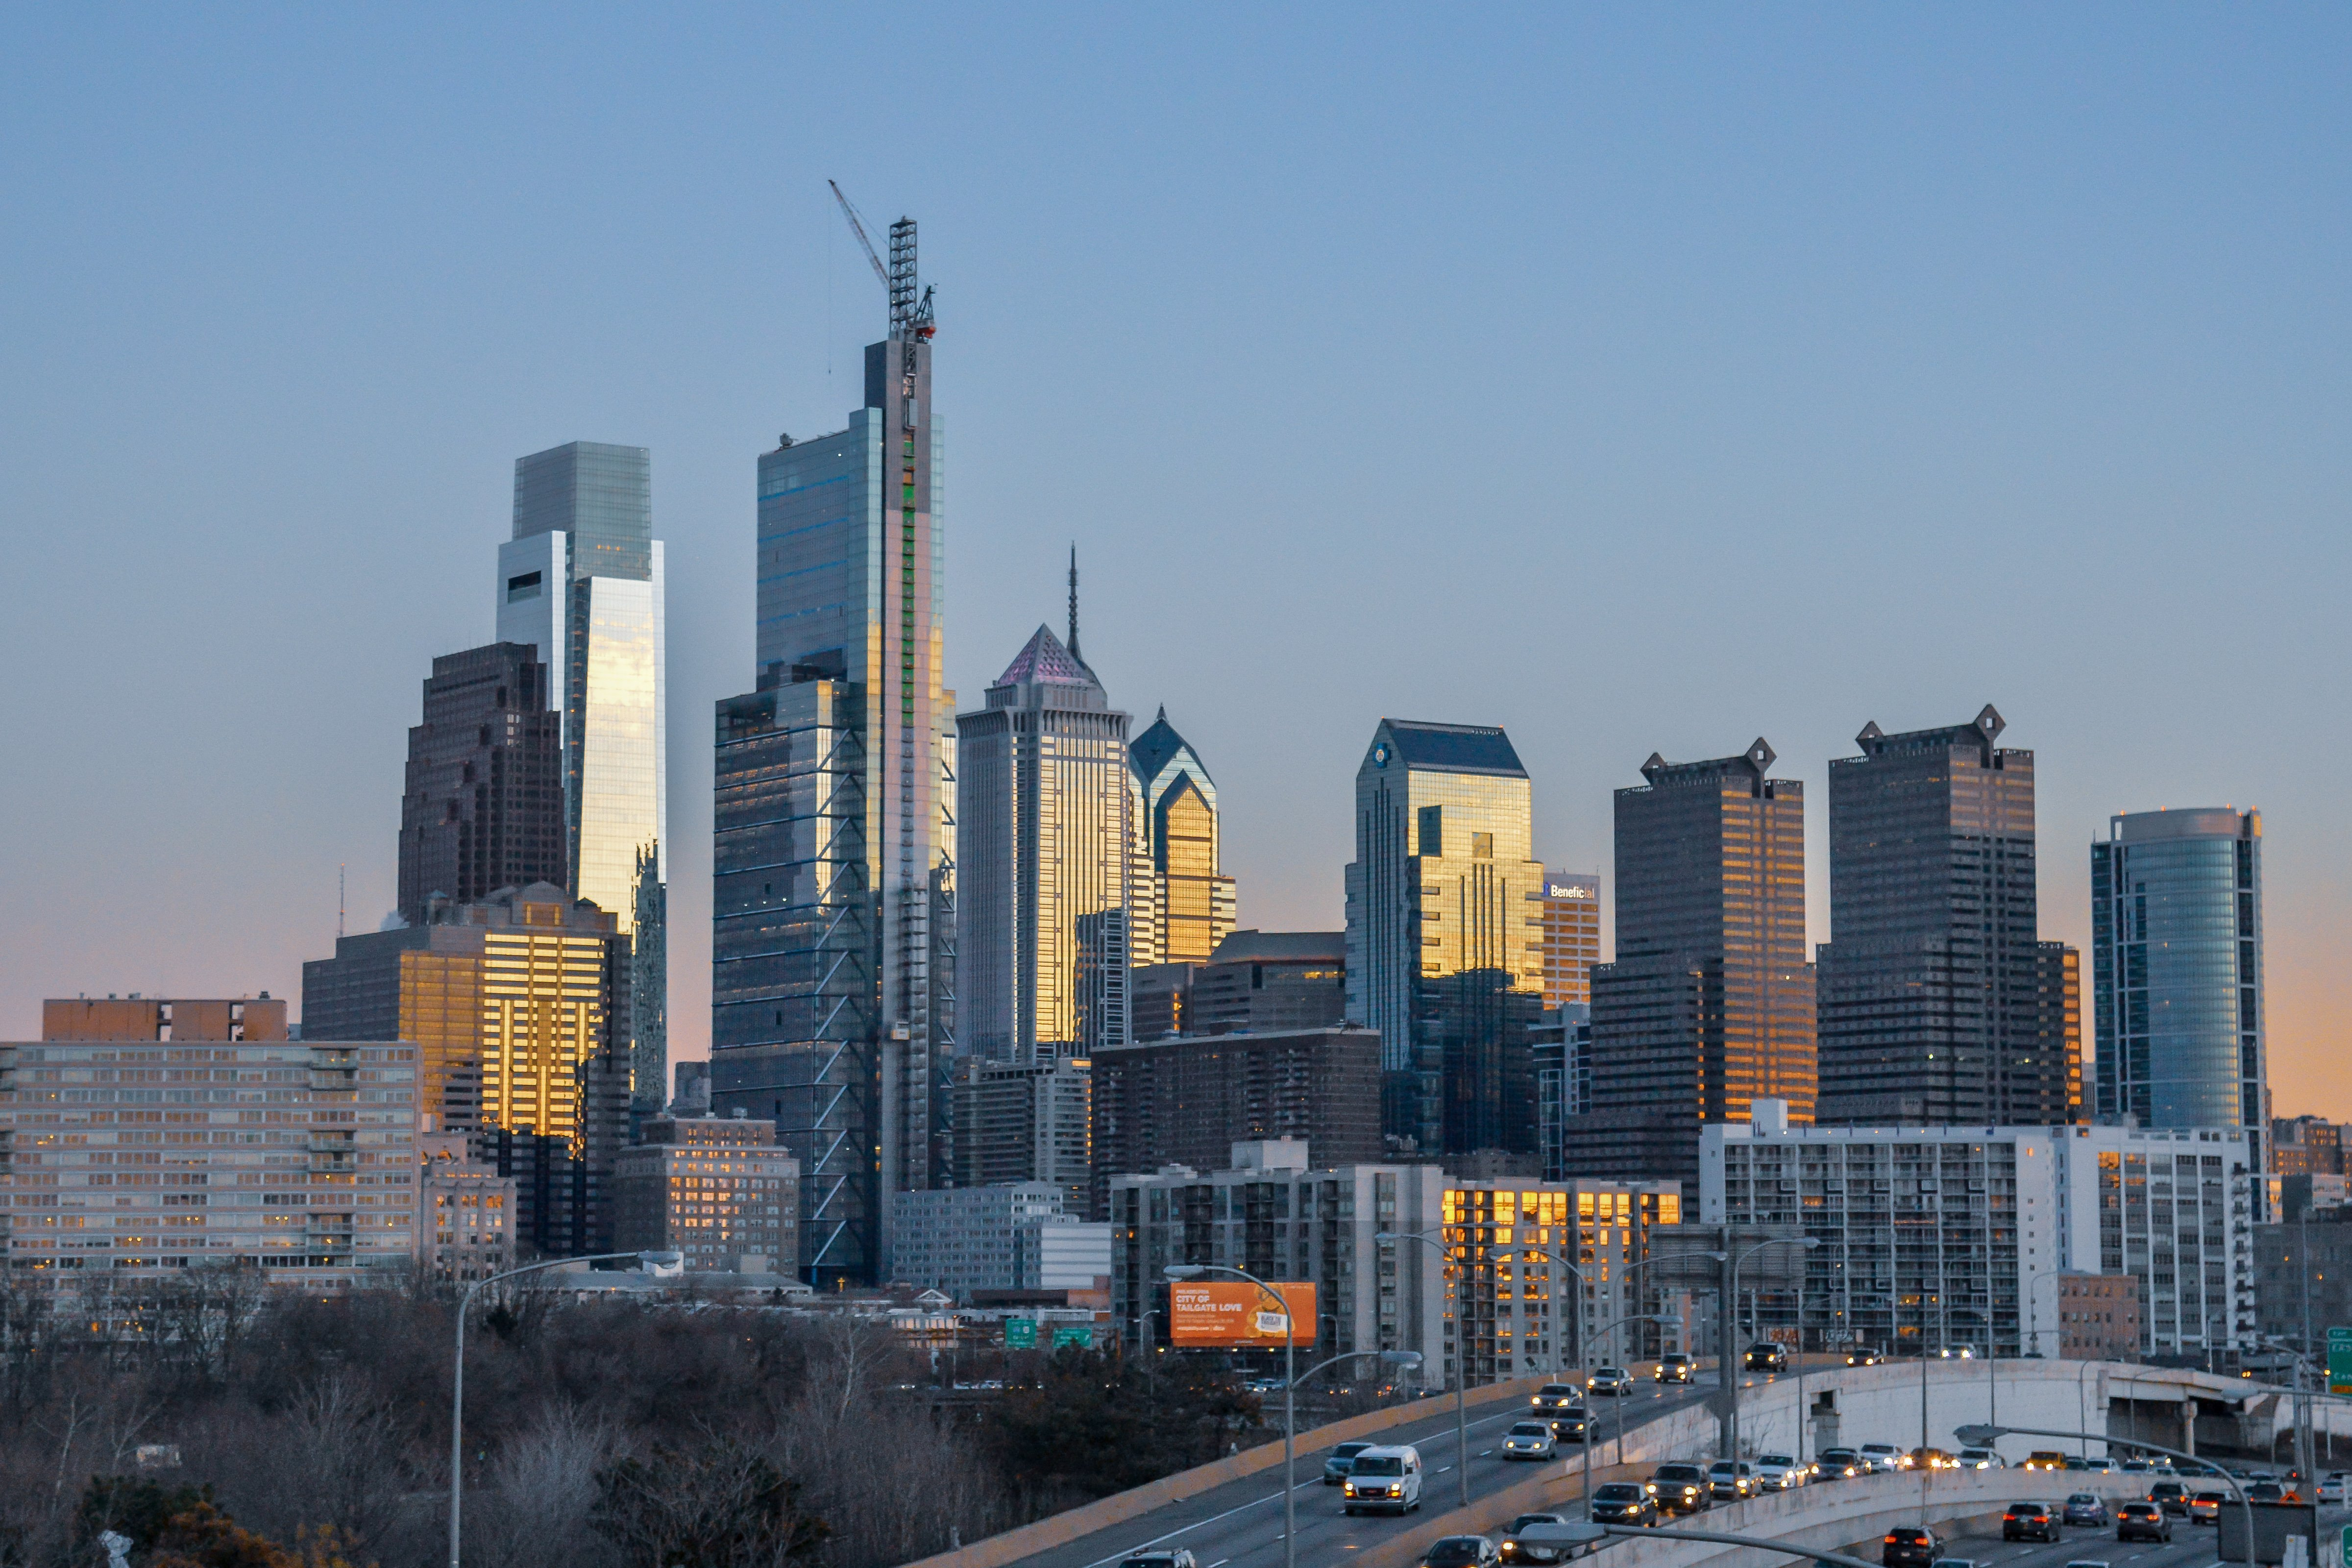 The large Philadelphia skyline right at sunset by Drexel University|Photo: Getty Images